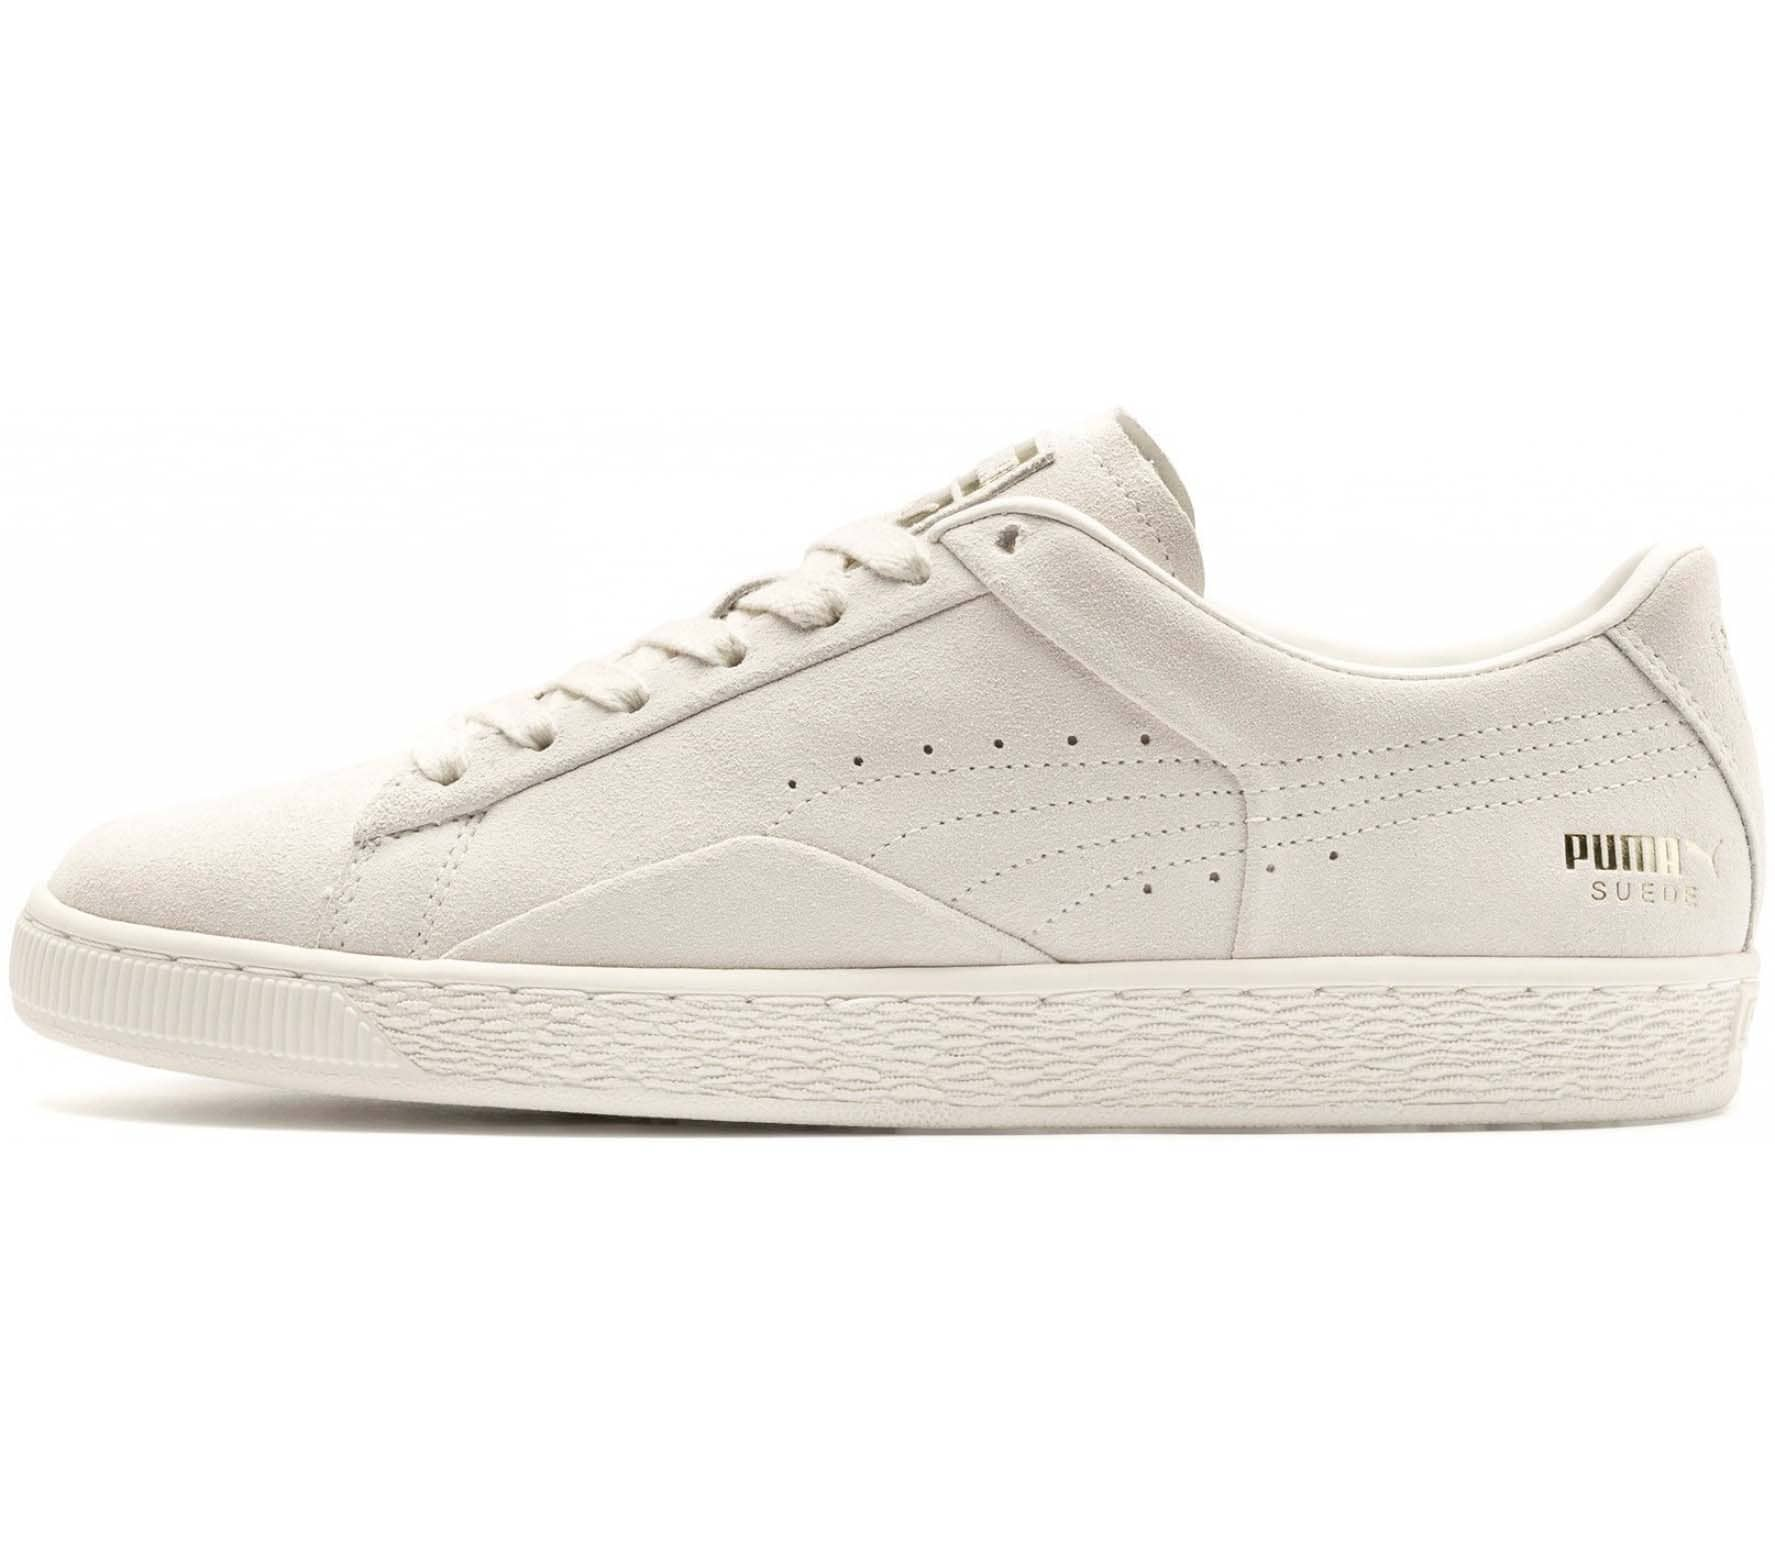 separation shoes 9d1fa 89594 Puma Suede Notch Unisex Sneakers white